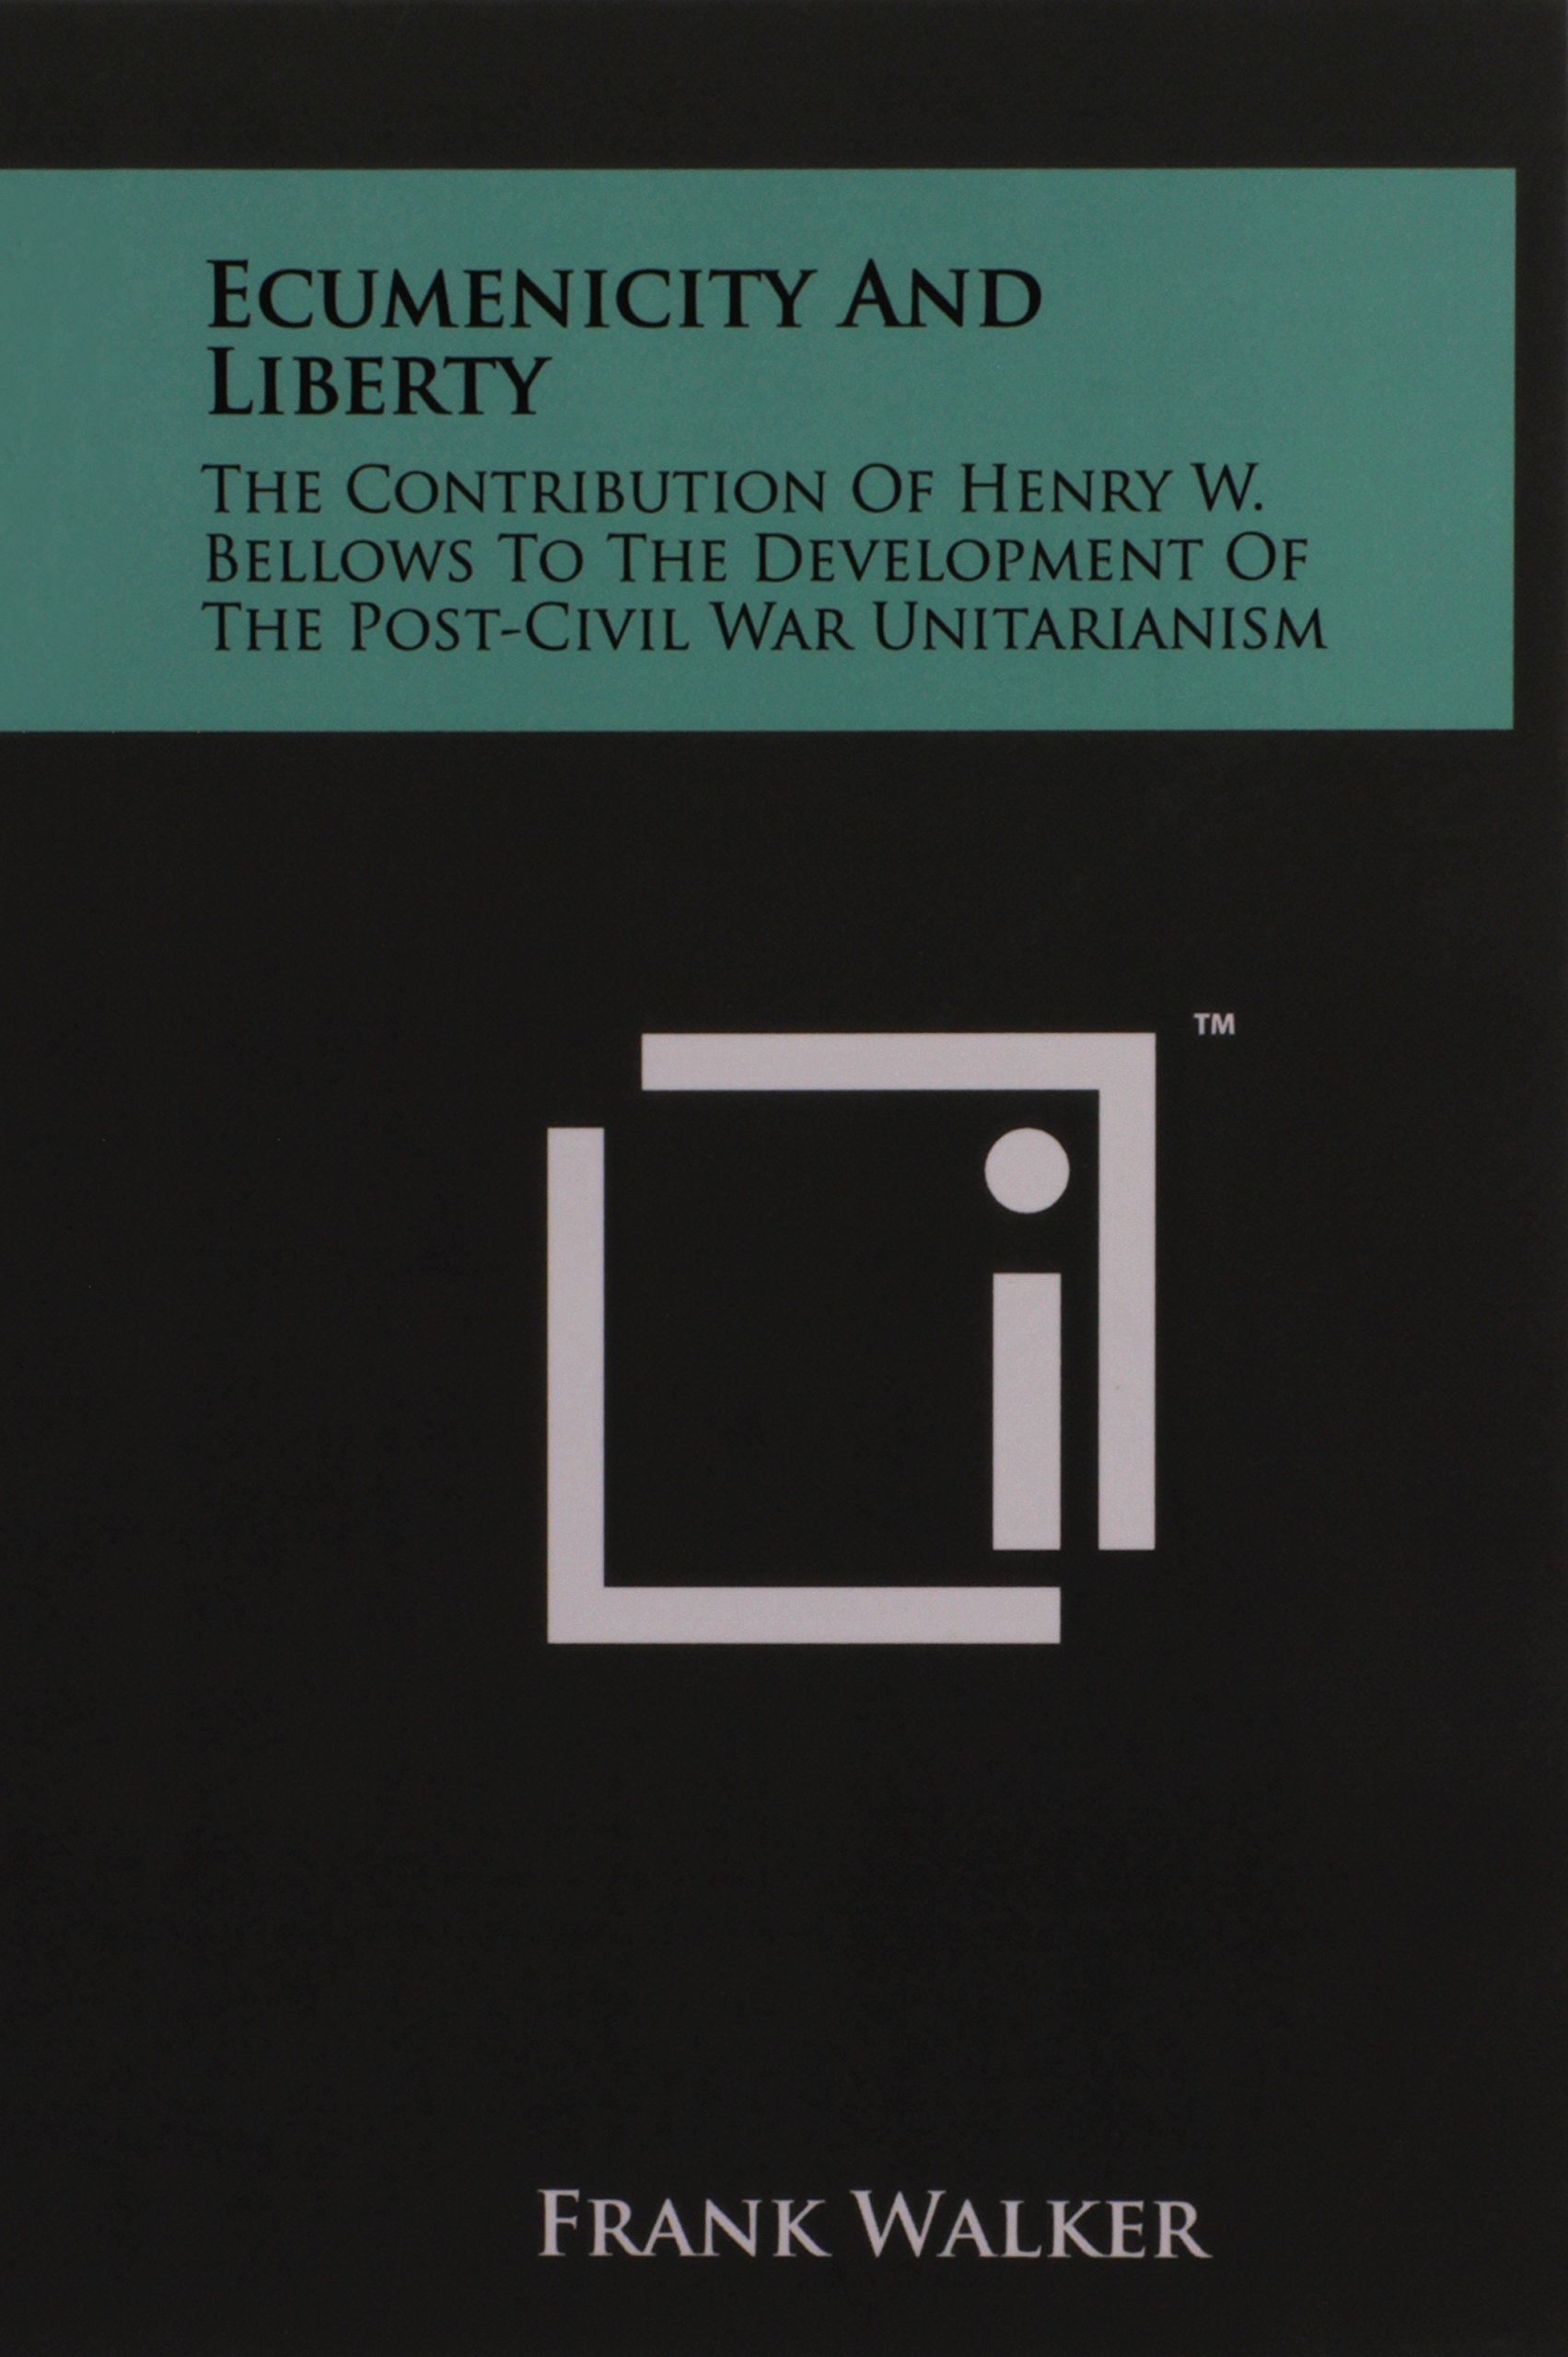 Read Online Ecumenicity And Liberty: The Contribution Of Henry W. Bellows To The Development Of The Post-Civil War Unitarianism pdf